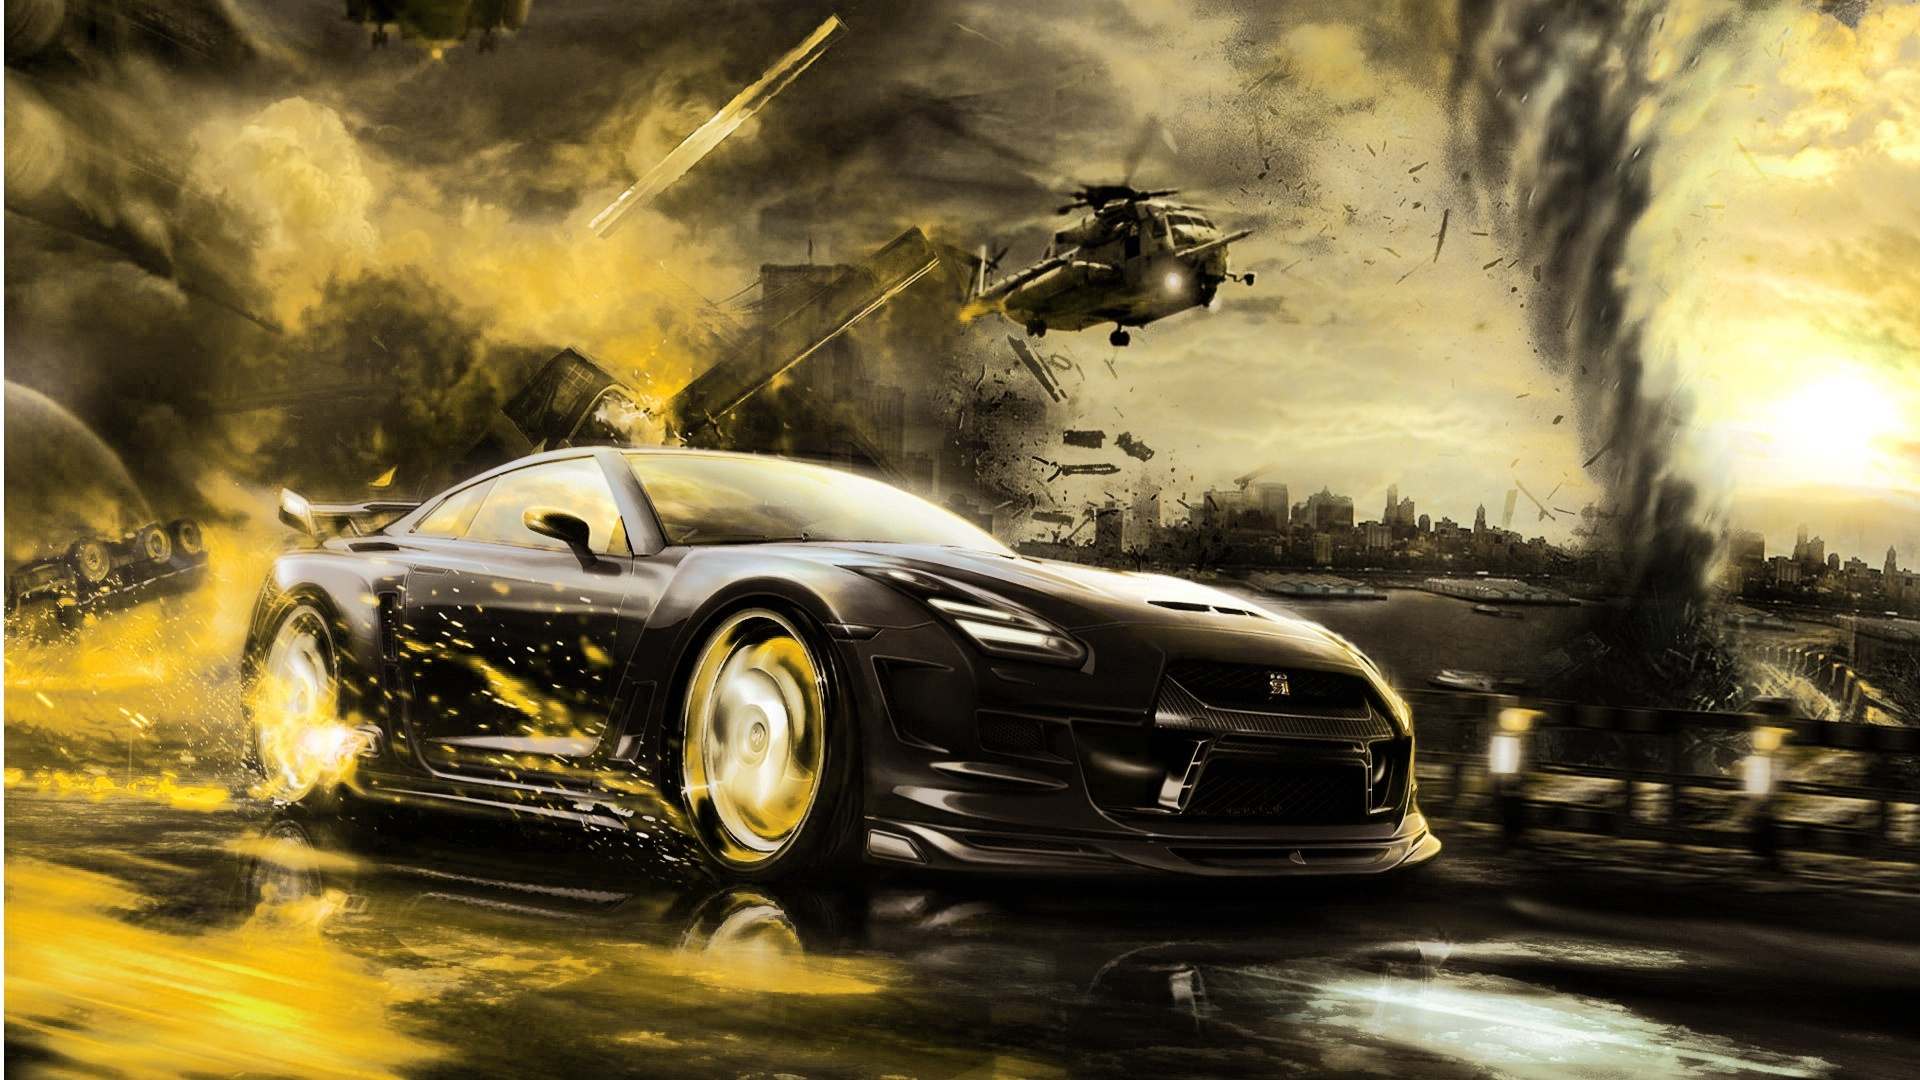 hd wallpapers 1080p hd wallpaper 1080p 2560x1600 Car Pictures 1920x1080